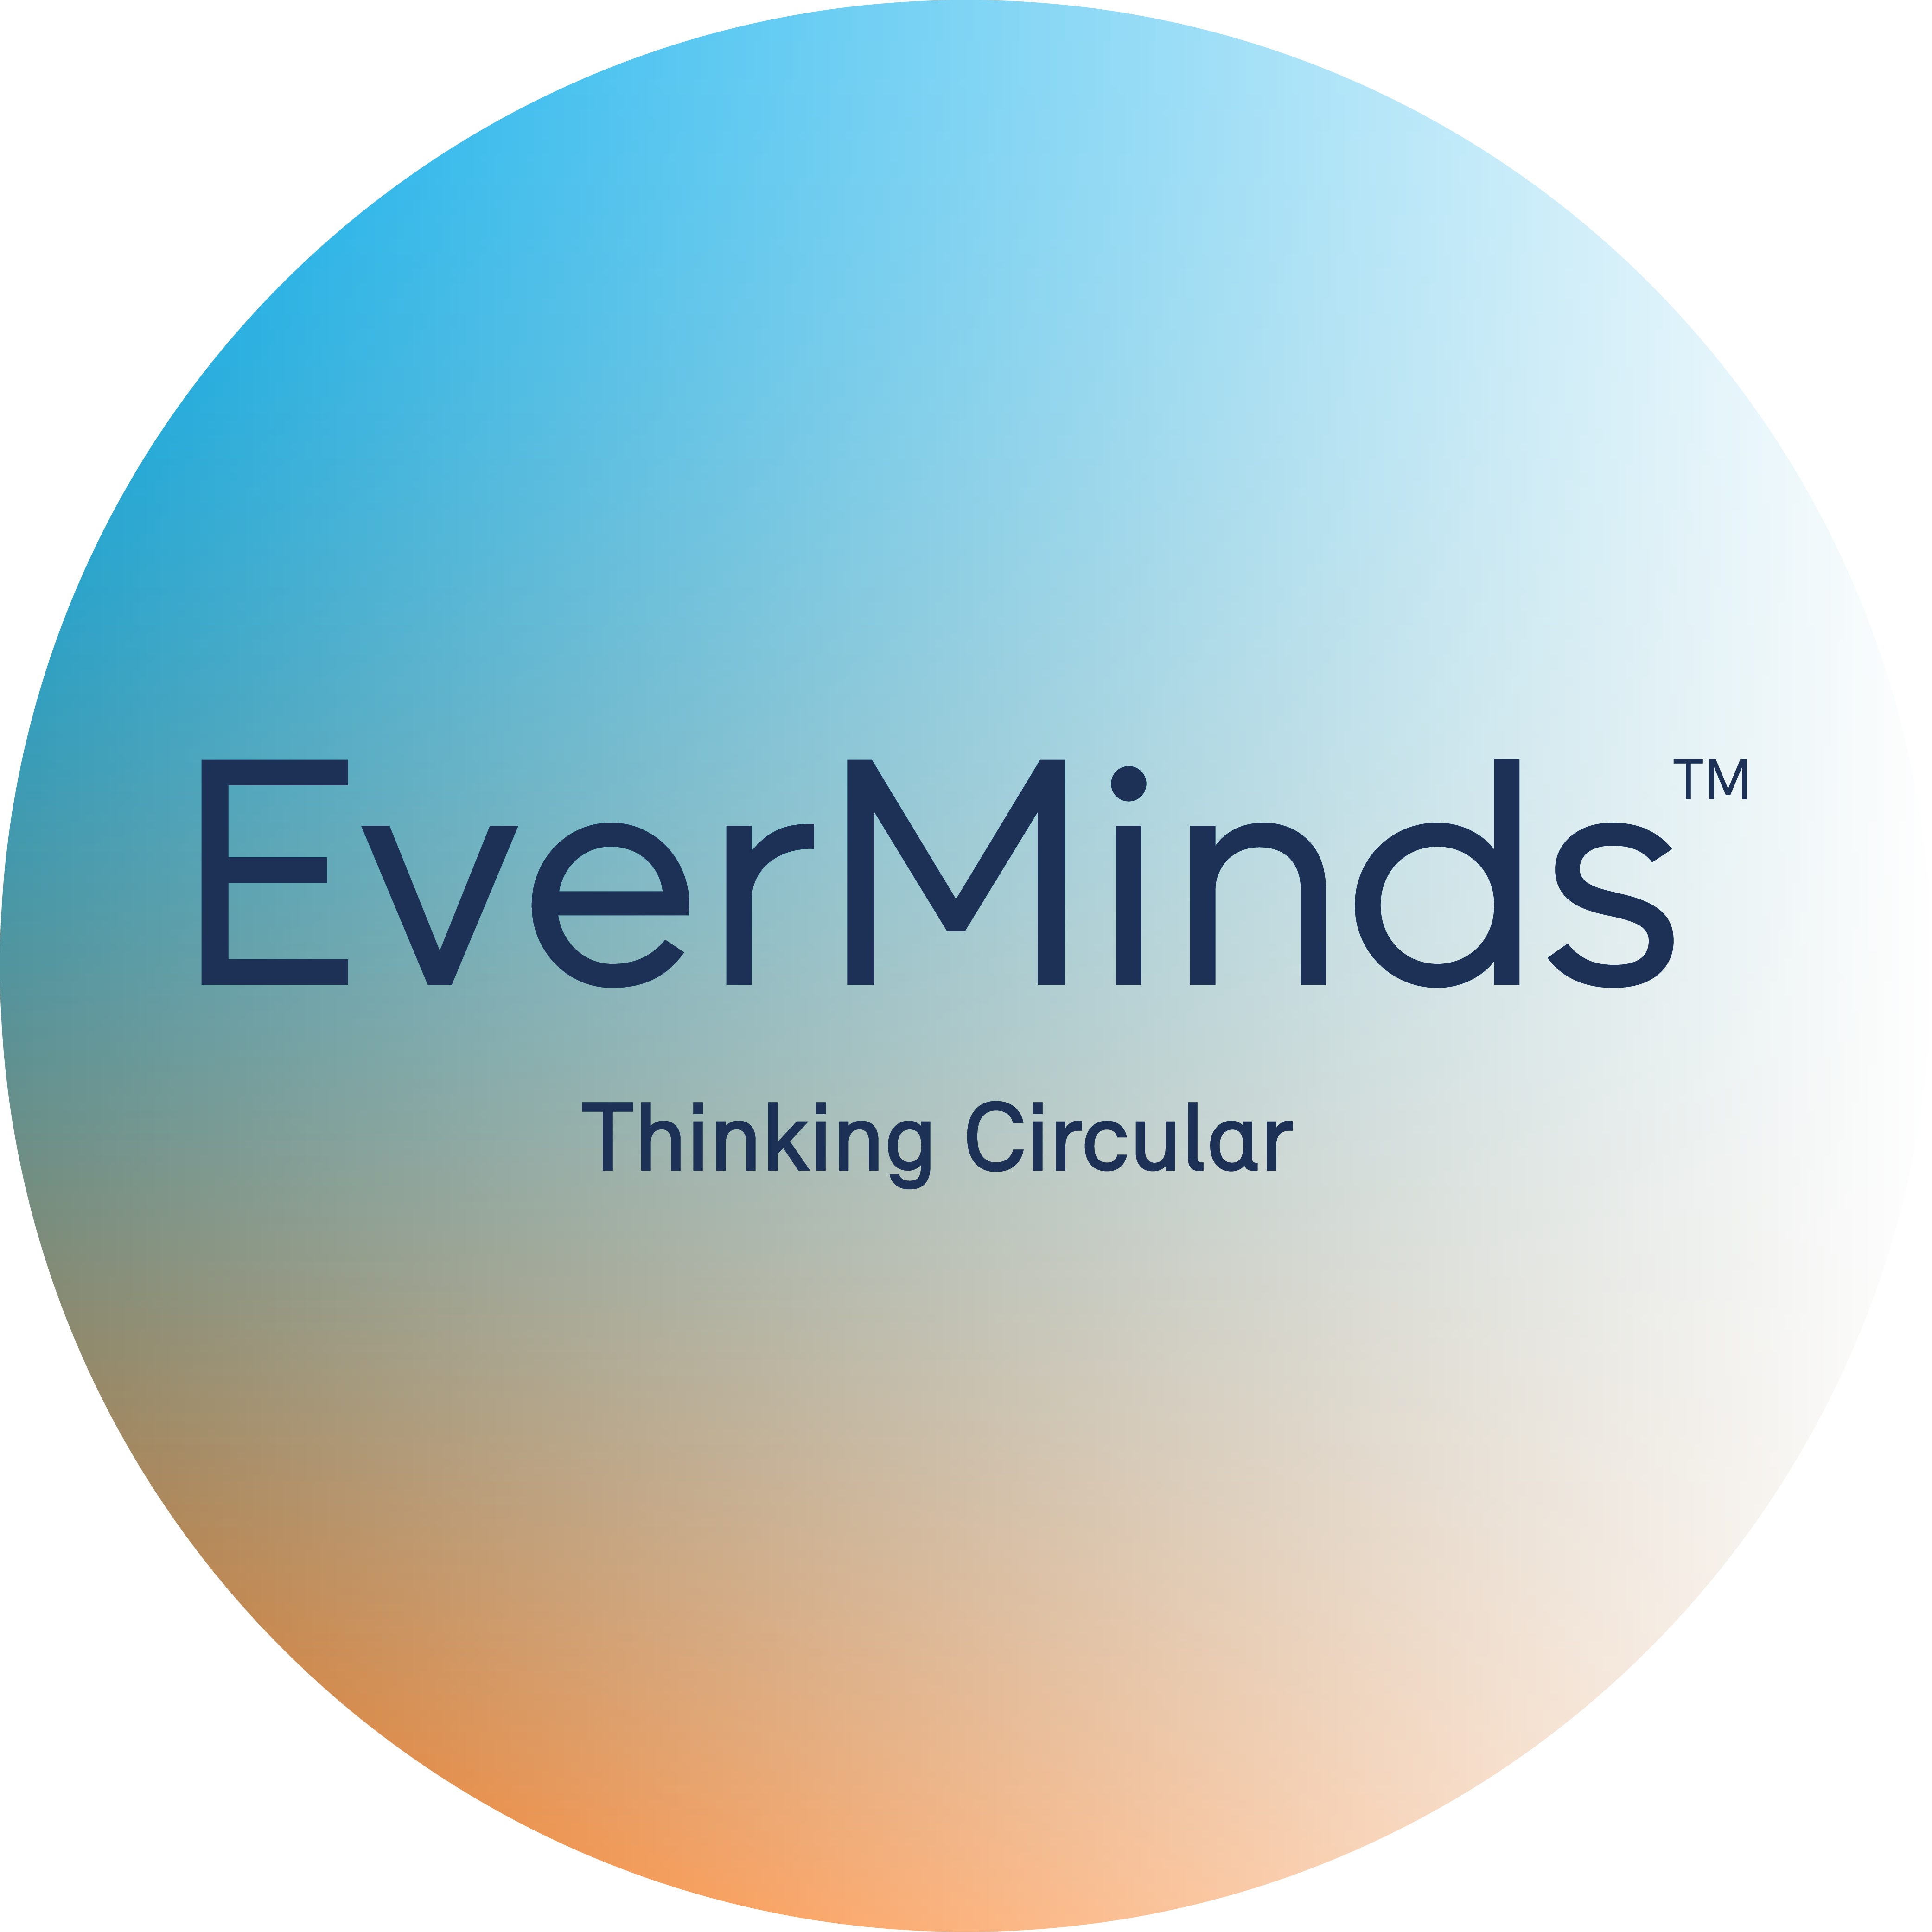 Thinking circular, Borealis launches EverMinds™: a new communication